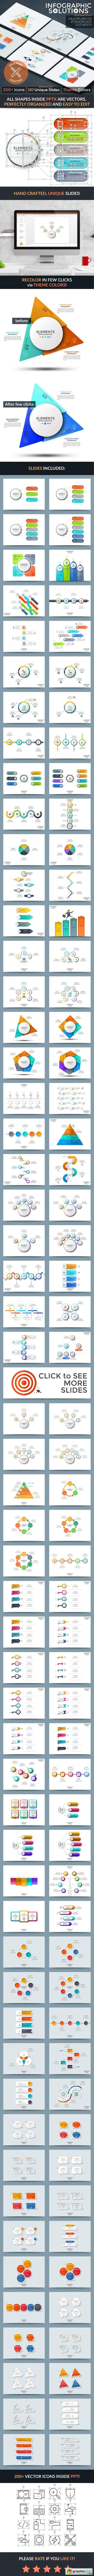 Infographic Solutions. Powerpoint Template